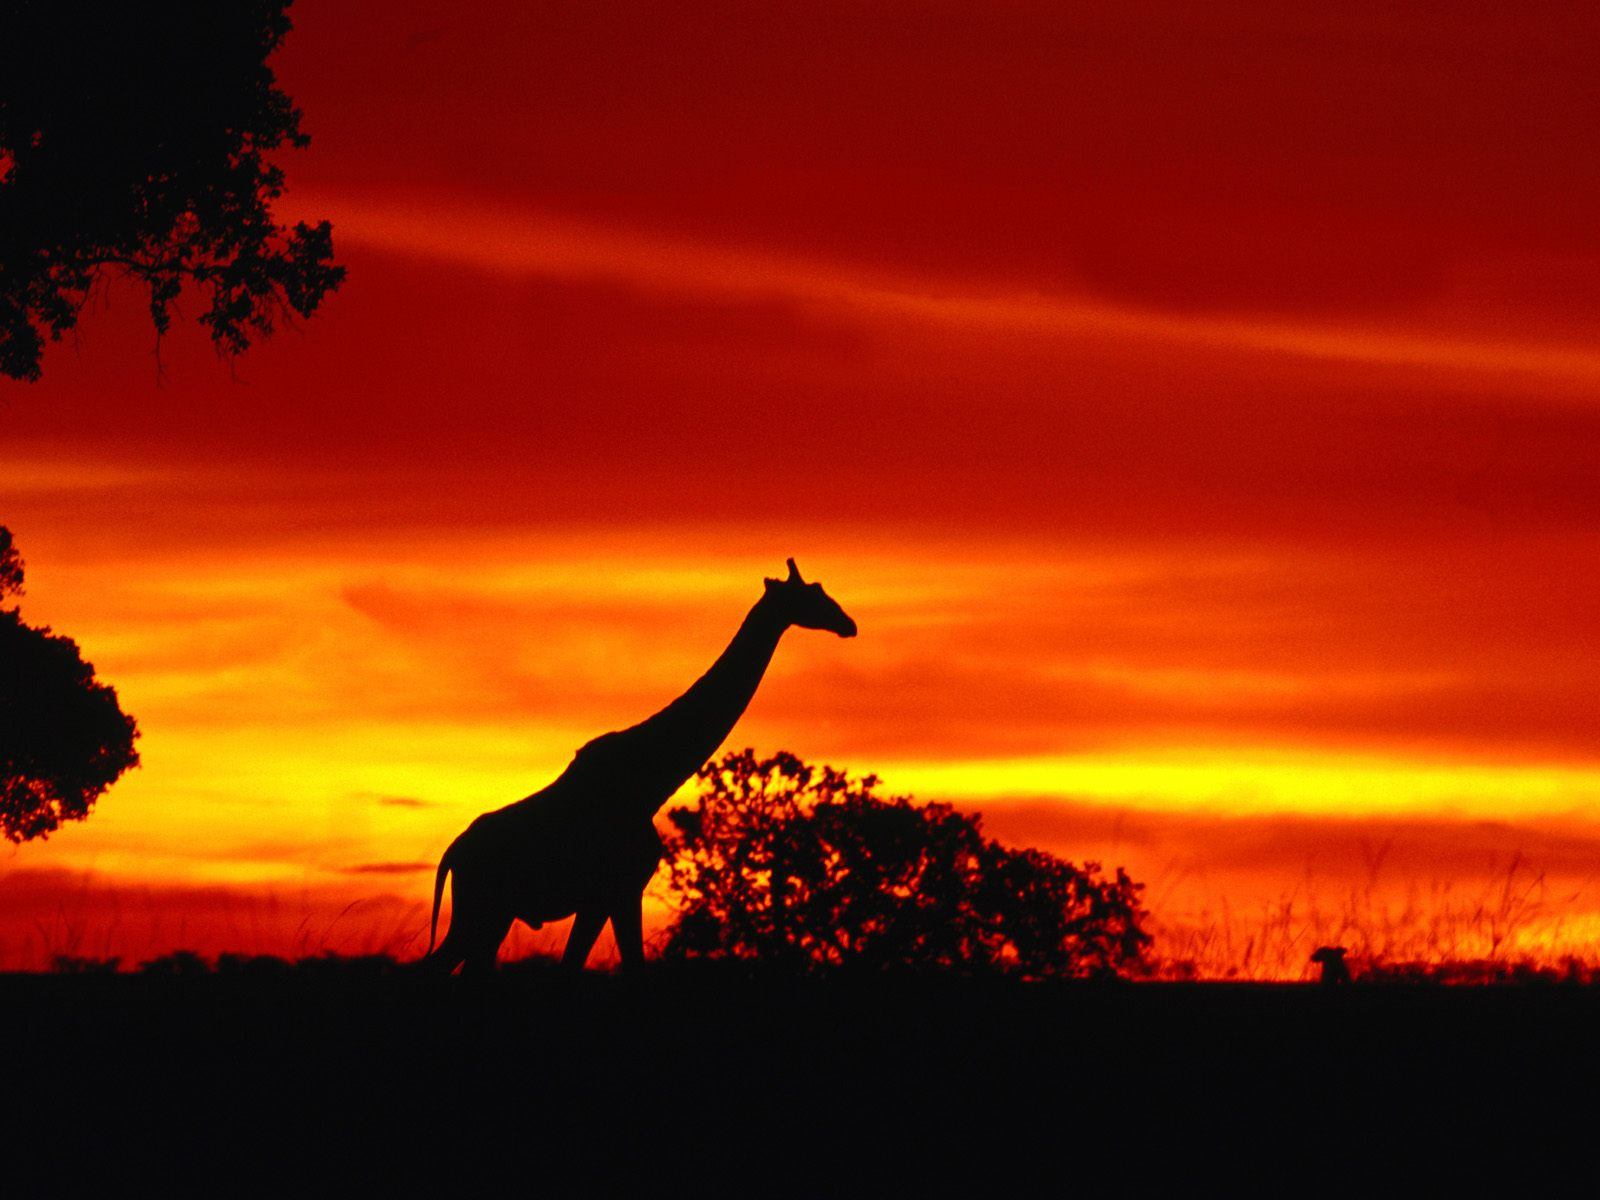 A Giraffe Journey at Dusk 4822.48 Kb